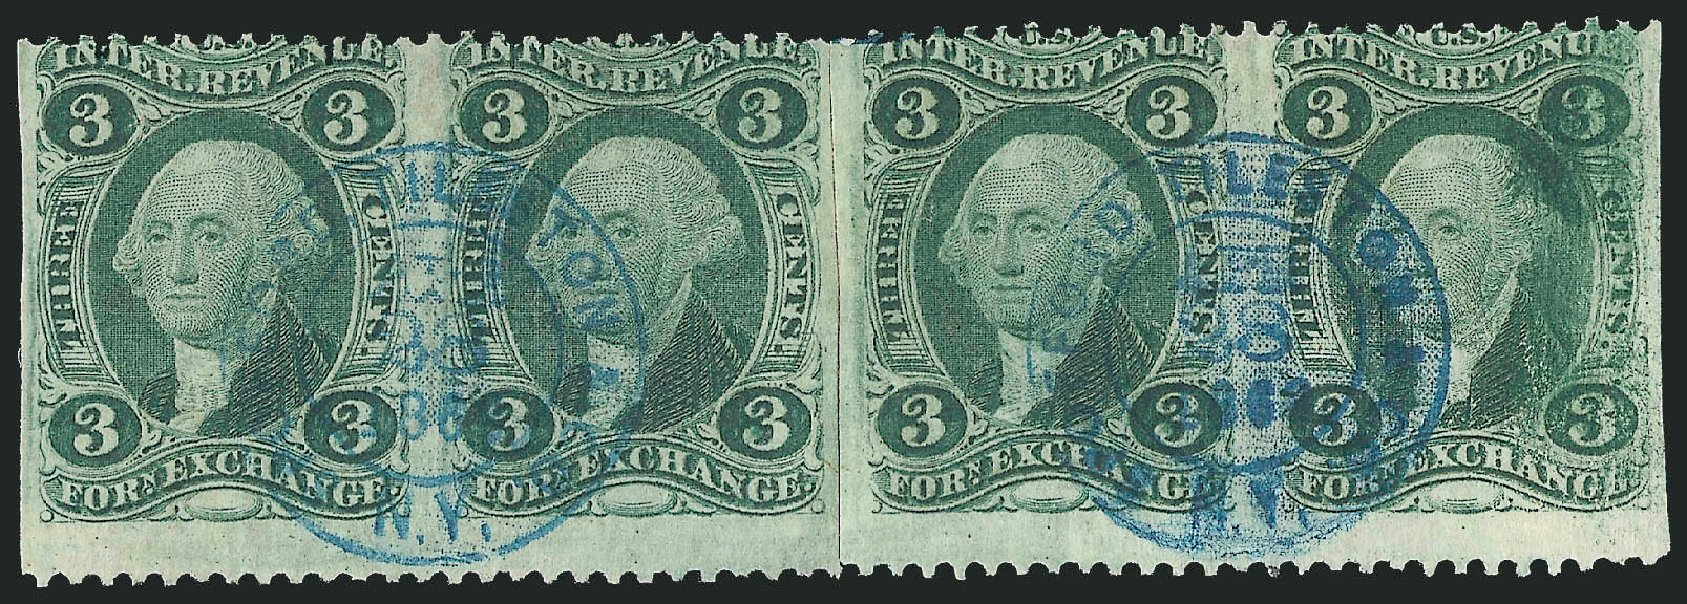 Cost of US Stamps Scott Catalogue R16: 3c 1862 Revenue Foreign Exchange. Robert Siegel Auction Galleries, Dec 2014, Sale 1089, Lot 392